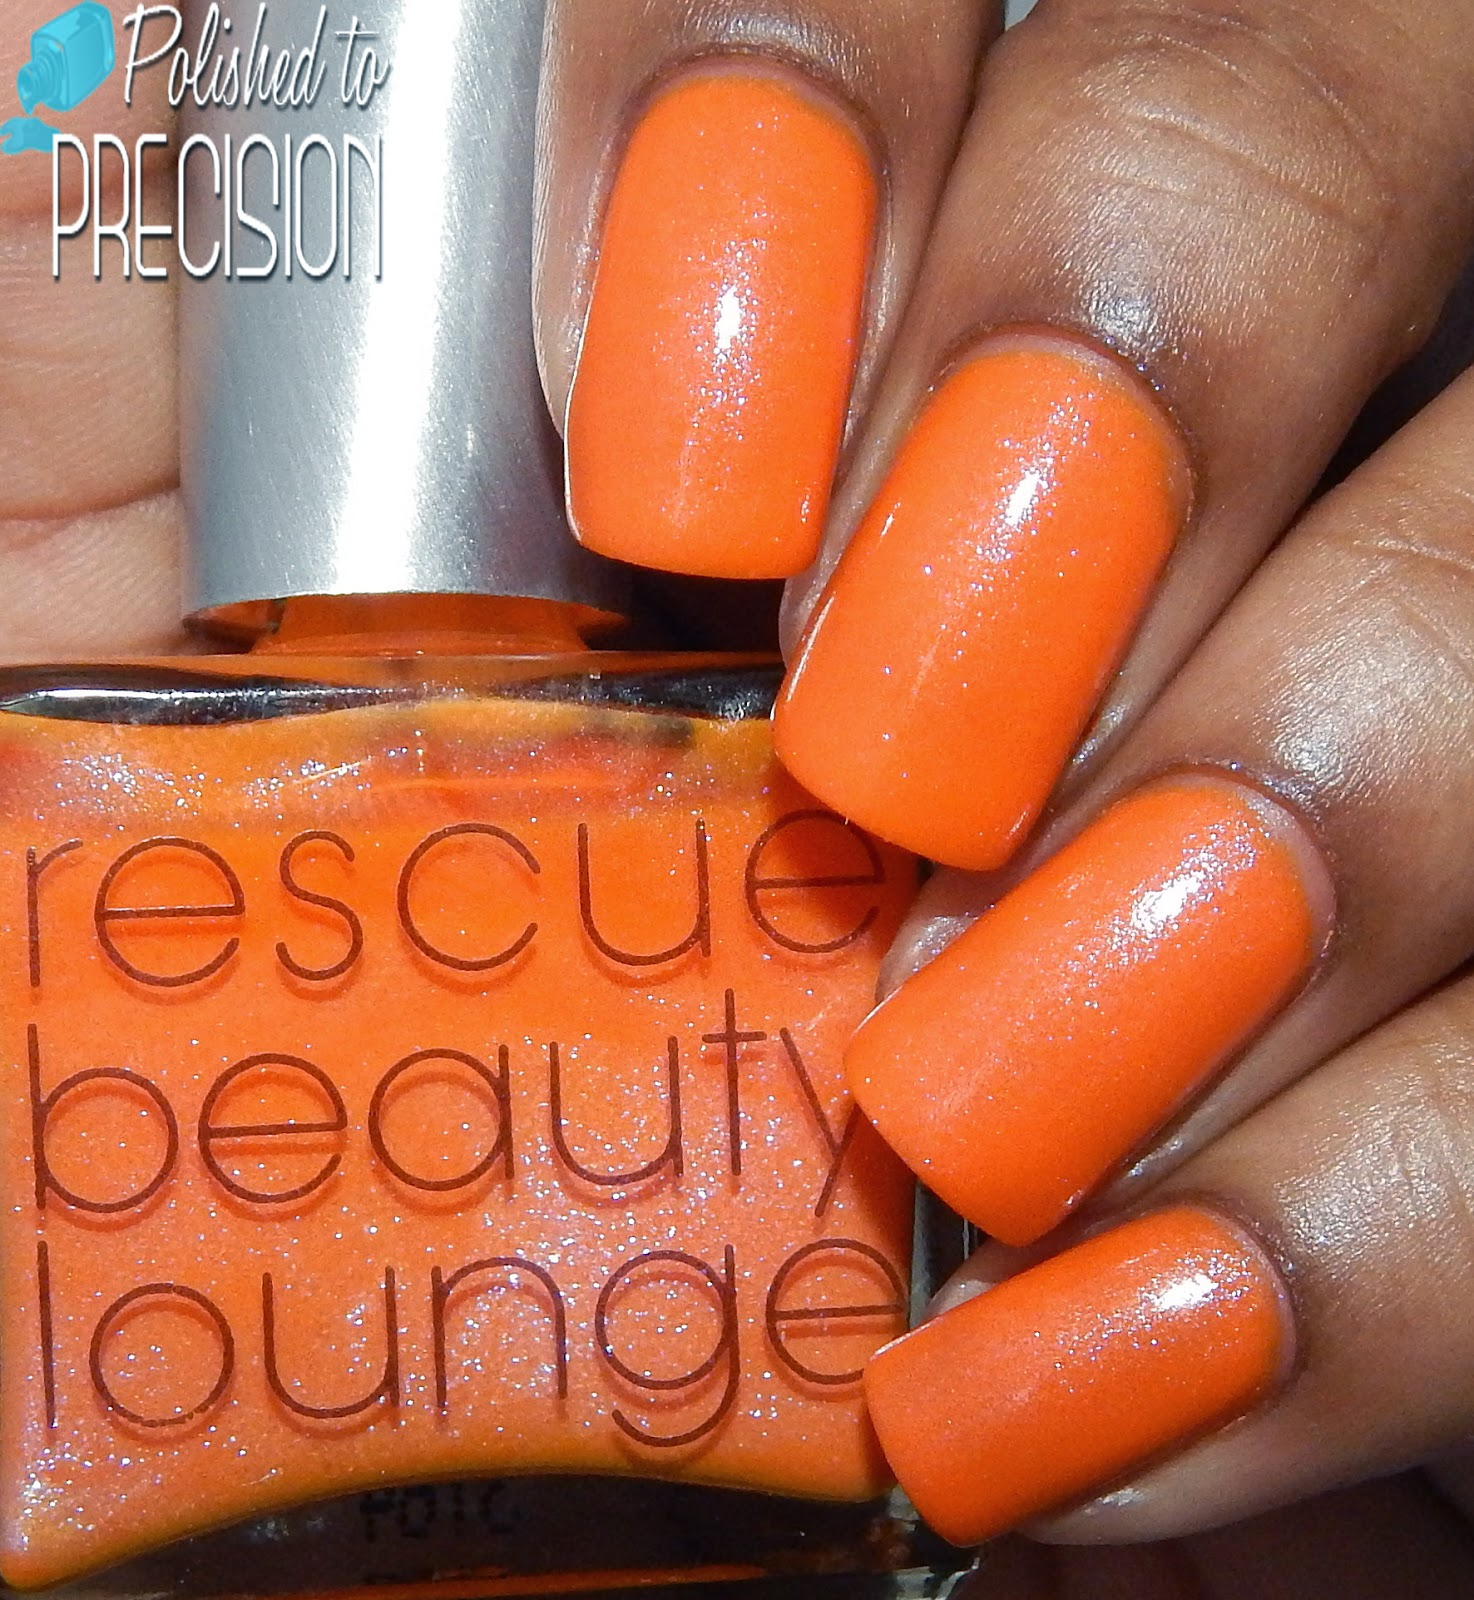 Rescue Beauty Lounge Nails and Noms Swatch